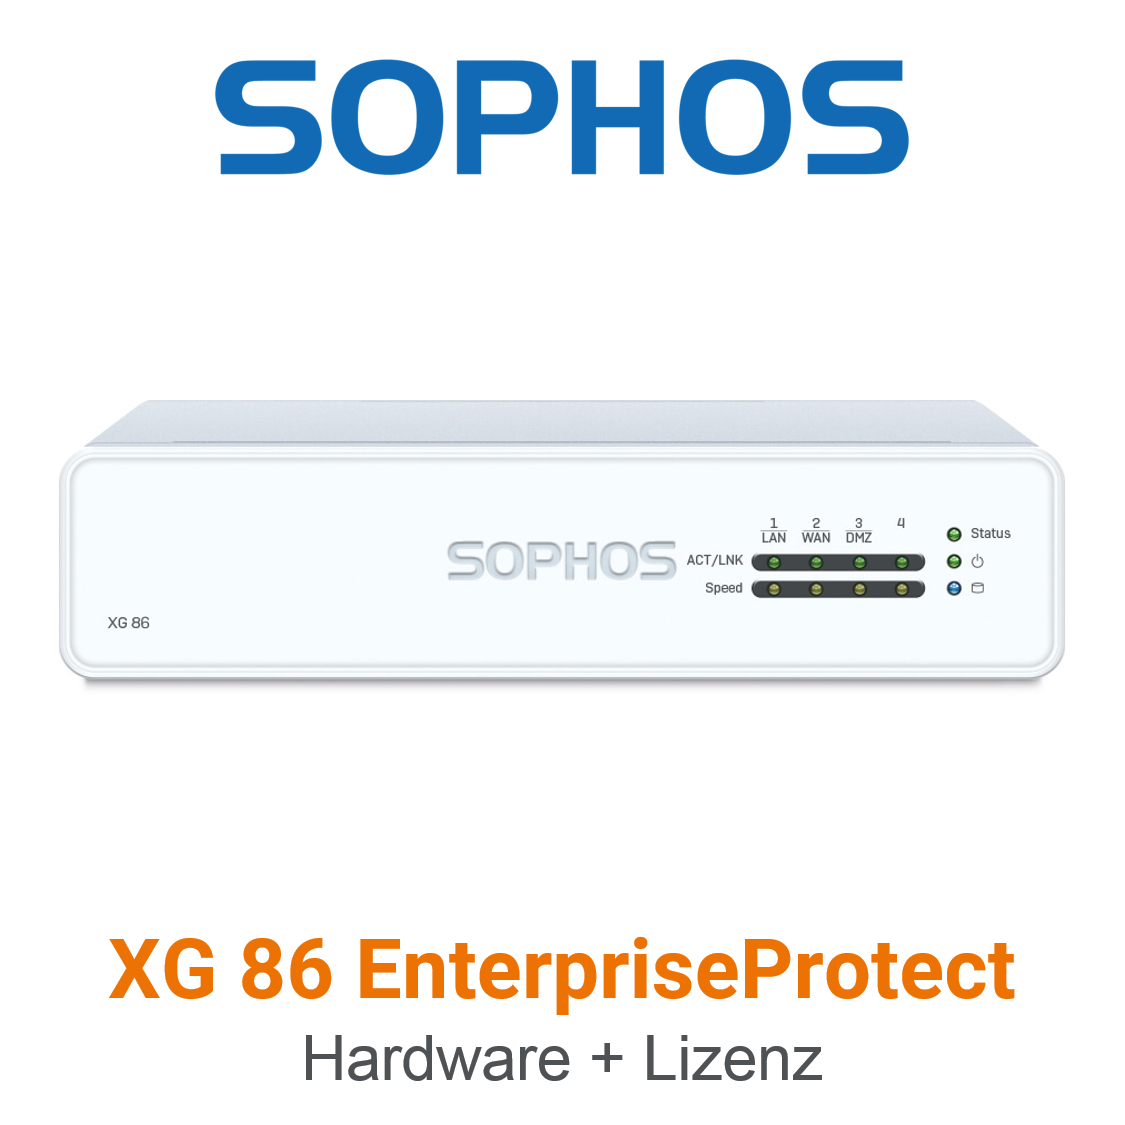 Sophos XG 86 EnterpriseProtect Bundle (Hardware + Lizenz)